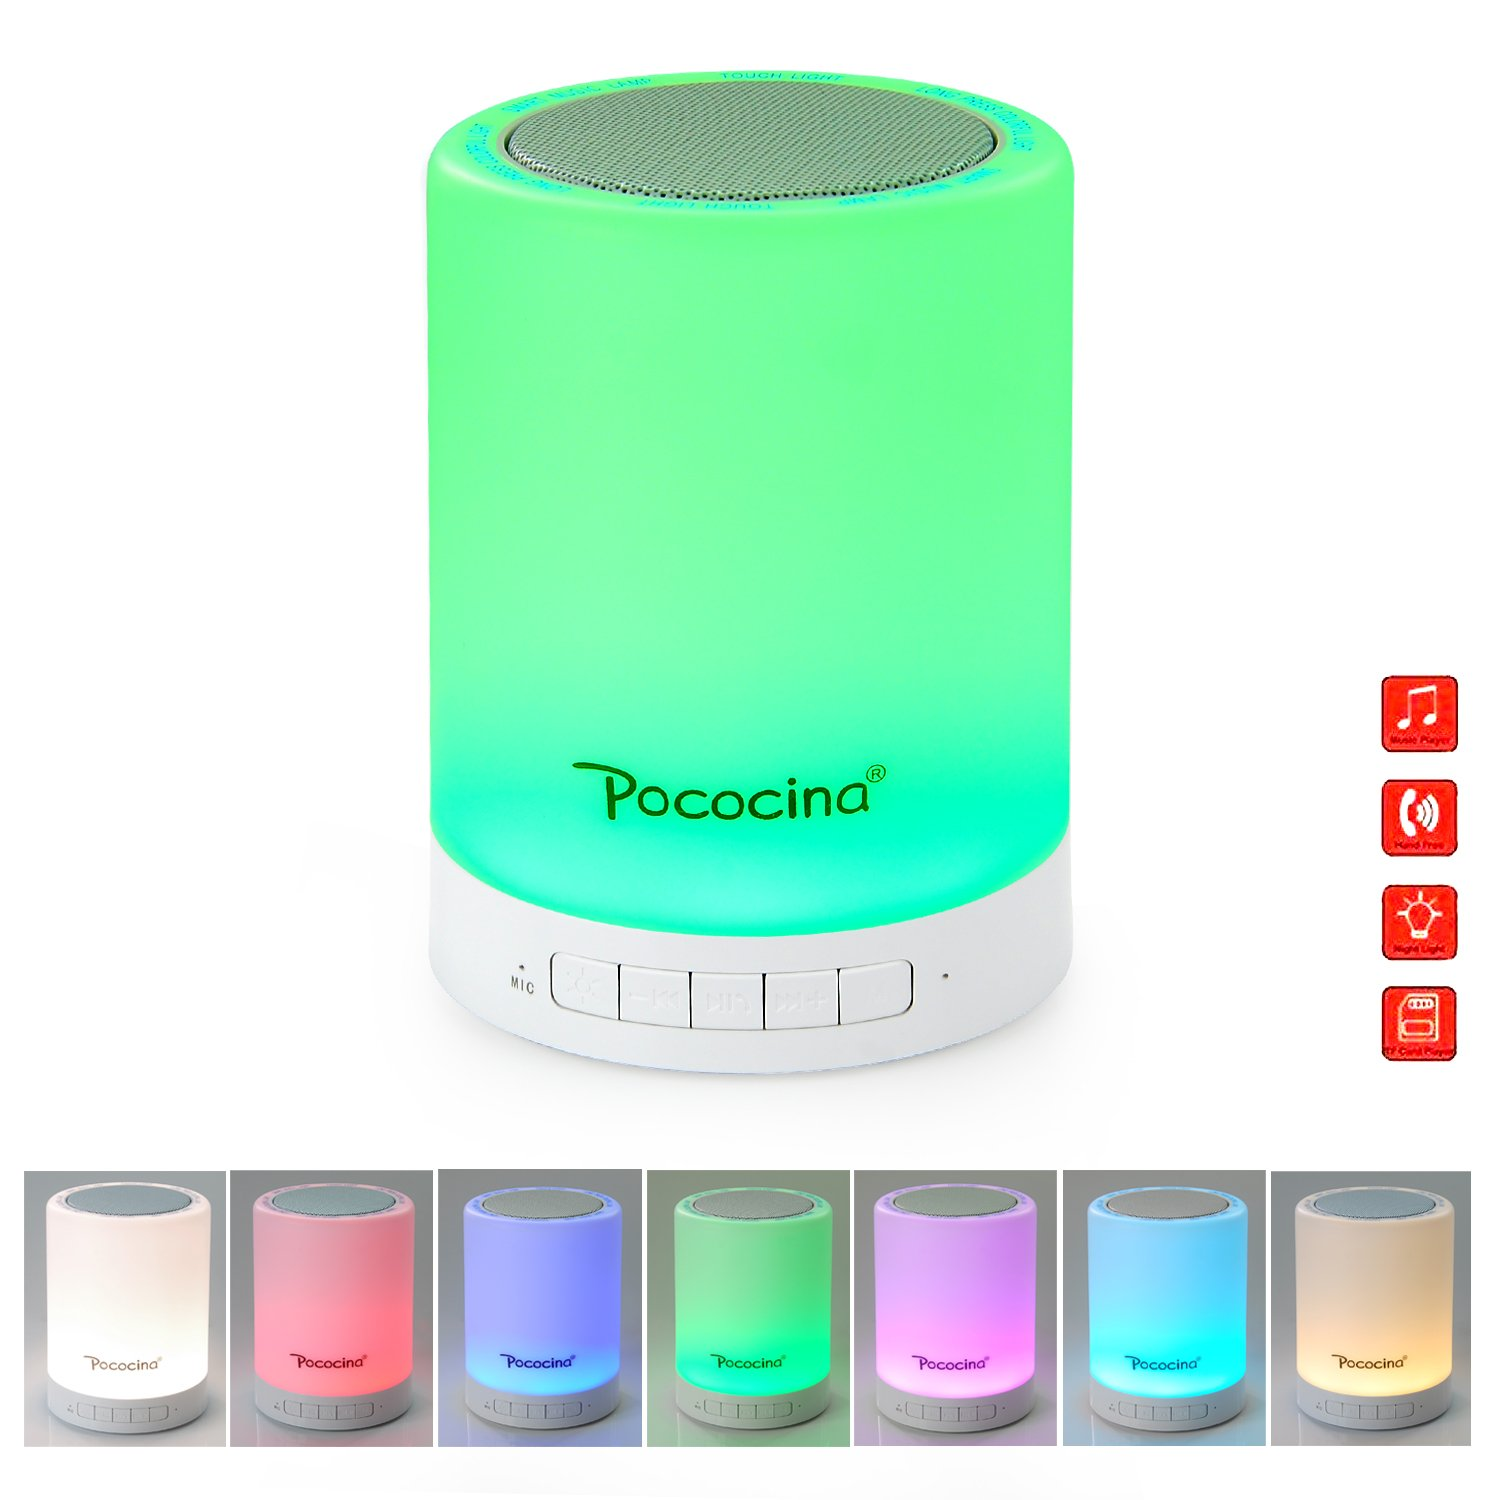 Bluetooth Speaker Night Light Dimmable Table Lamp Smart Touch Control LED Color Changing Mood Light for Bedroom Sleeping, Perfect Gift for Baby Kids Children Teens Adult